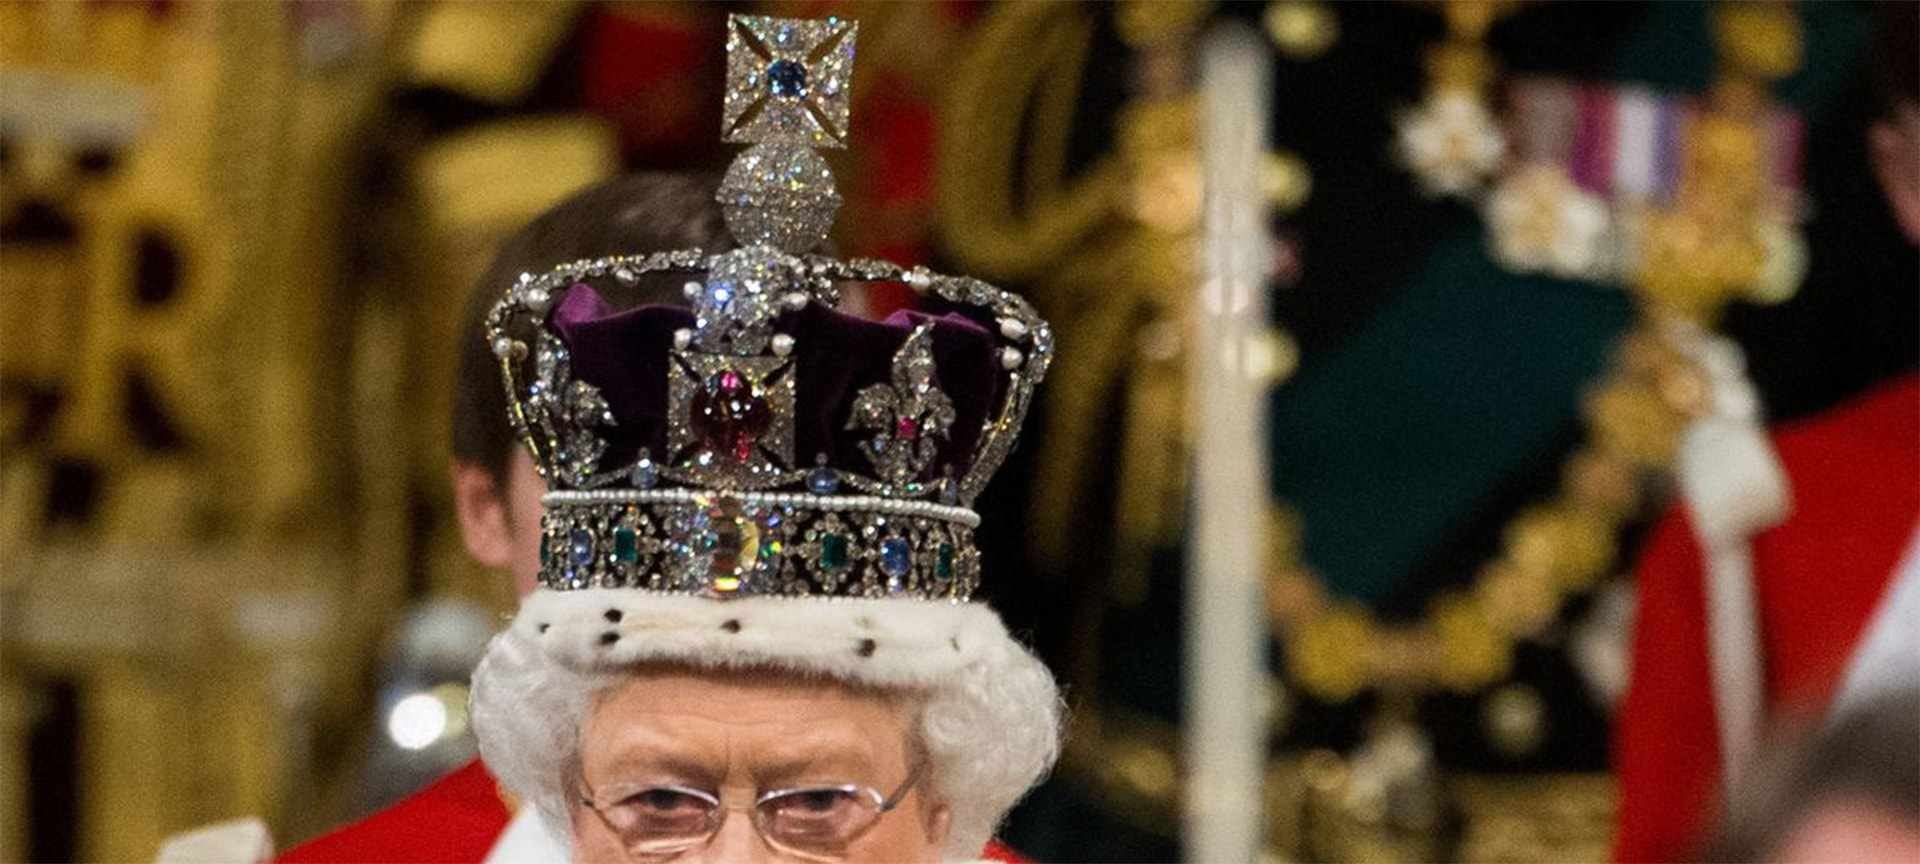 Queen Elizabeth II walks through the Royal Gallery during the State Opening of Parliament wearing a crown which carries one of the Cullinan diamonds.